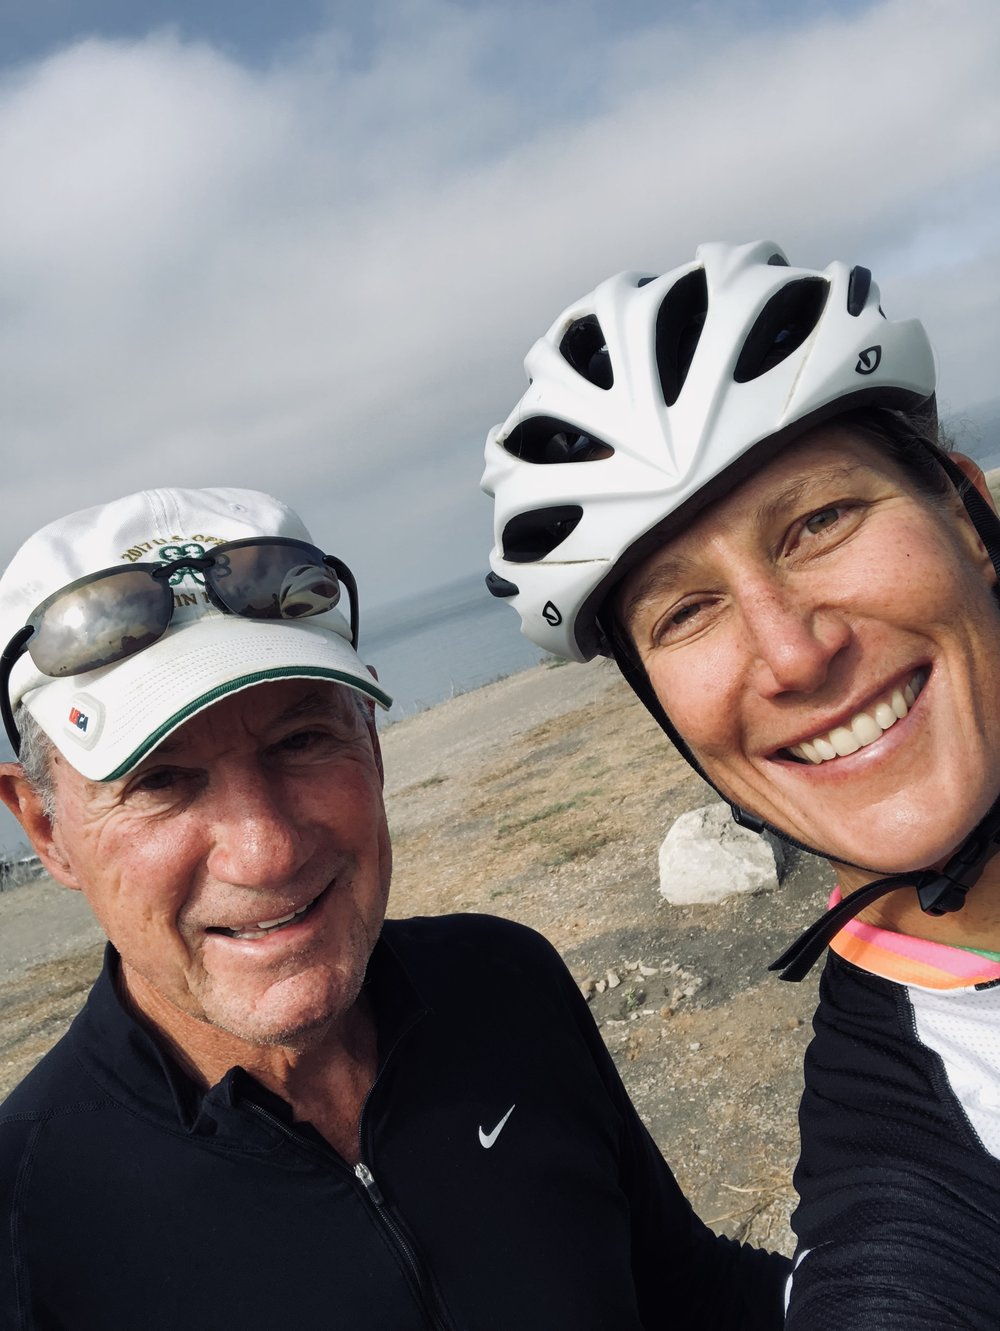 A surprise mid-ride rendezvous with my my dad.